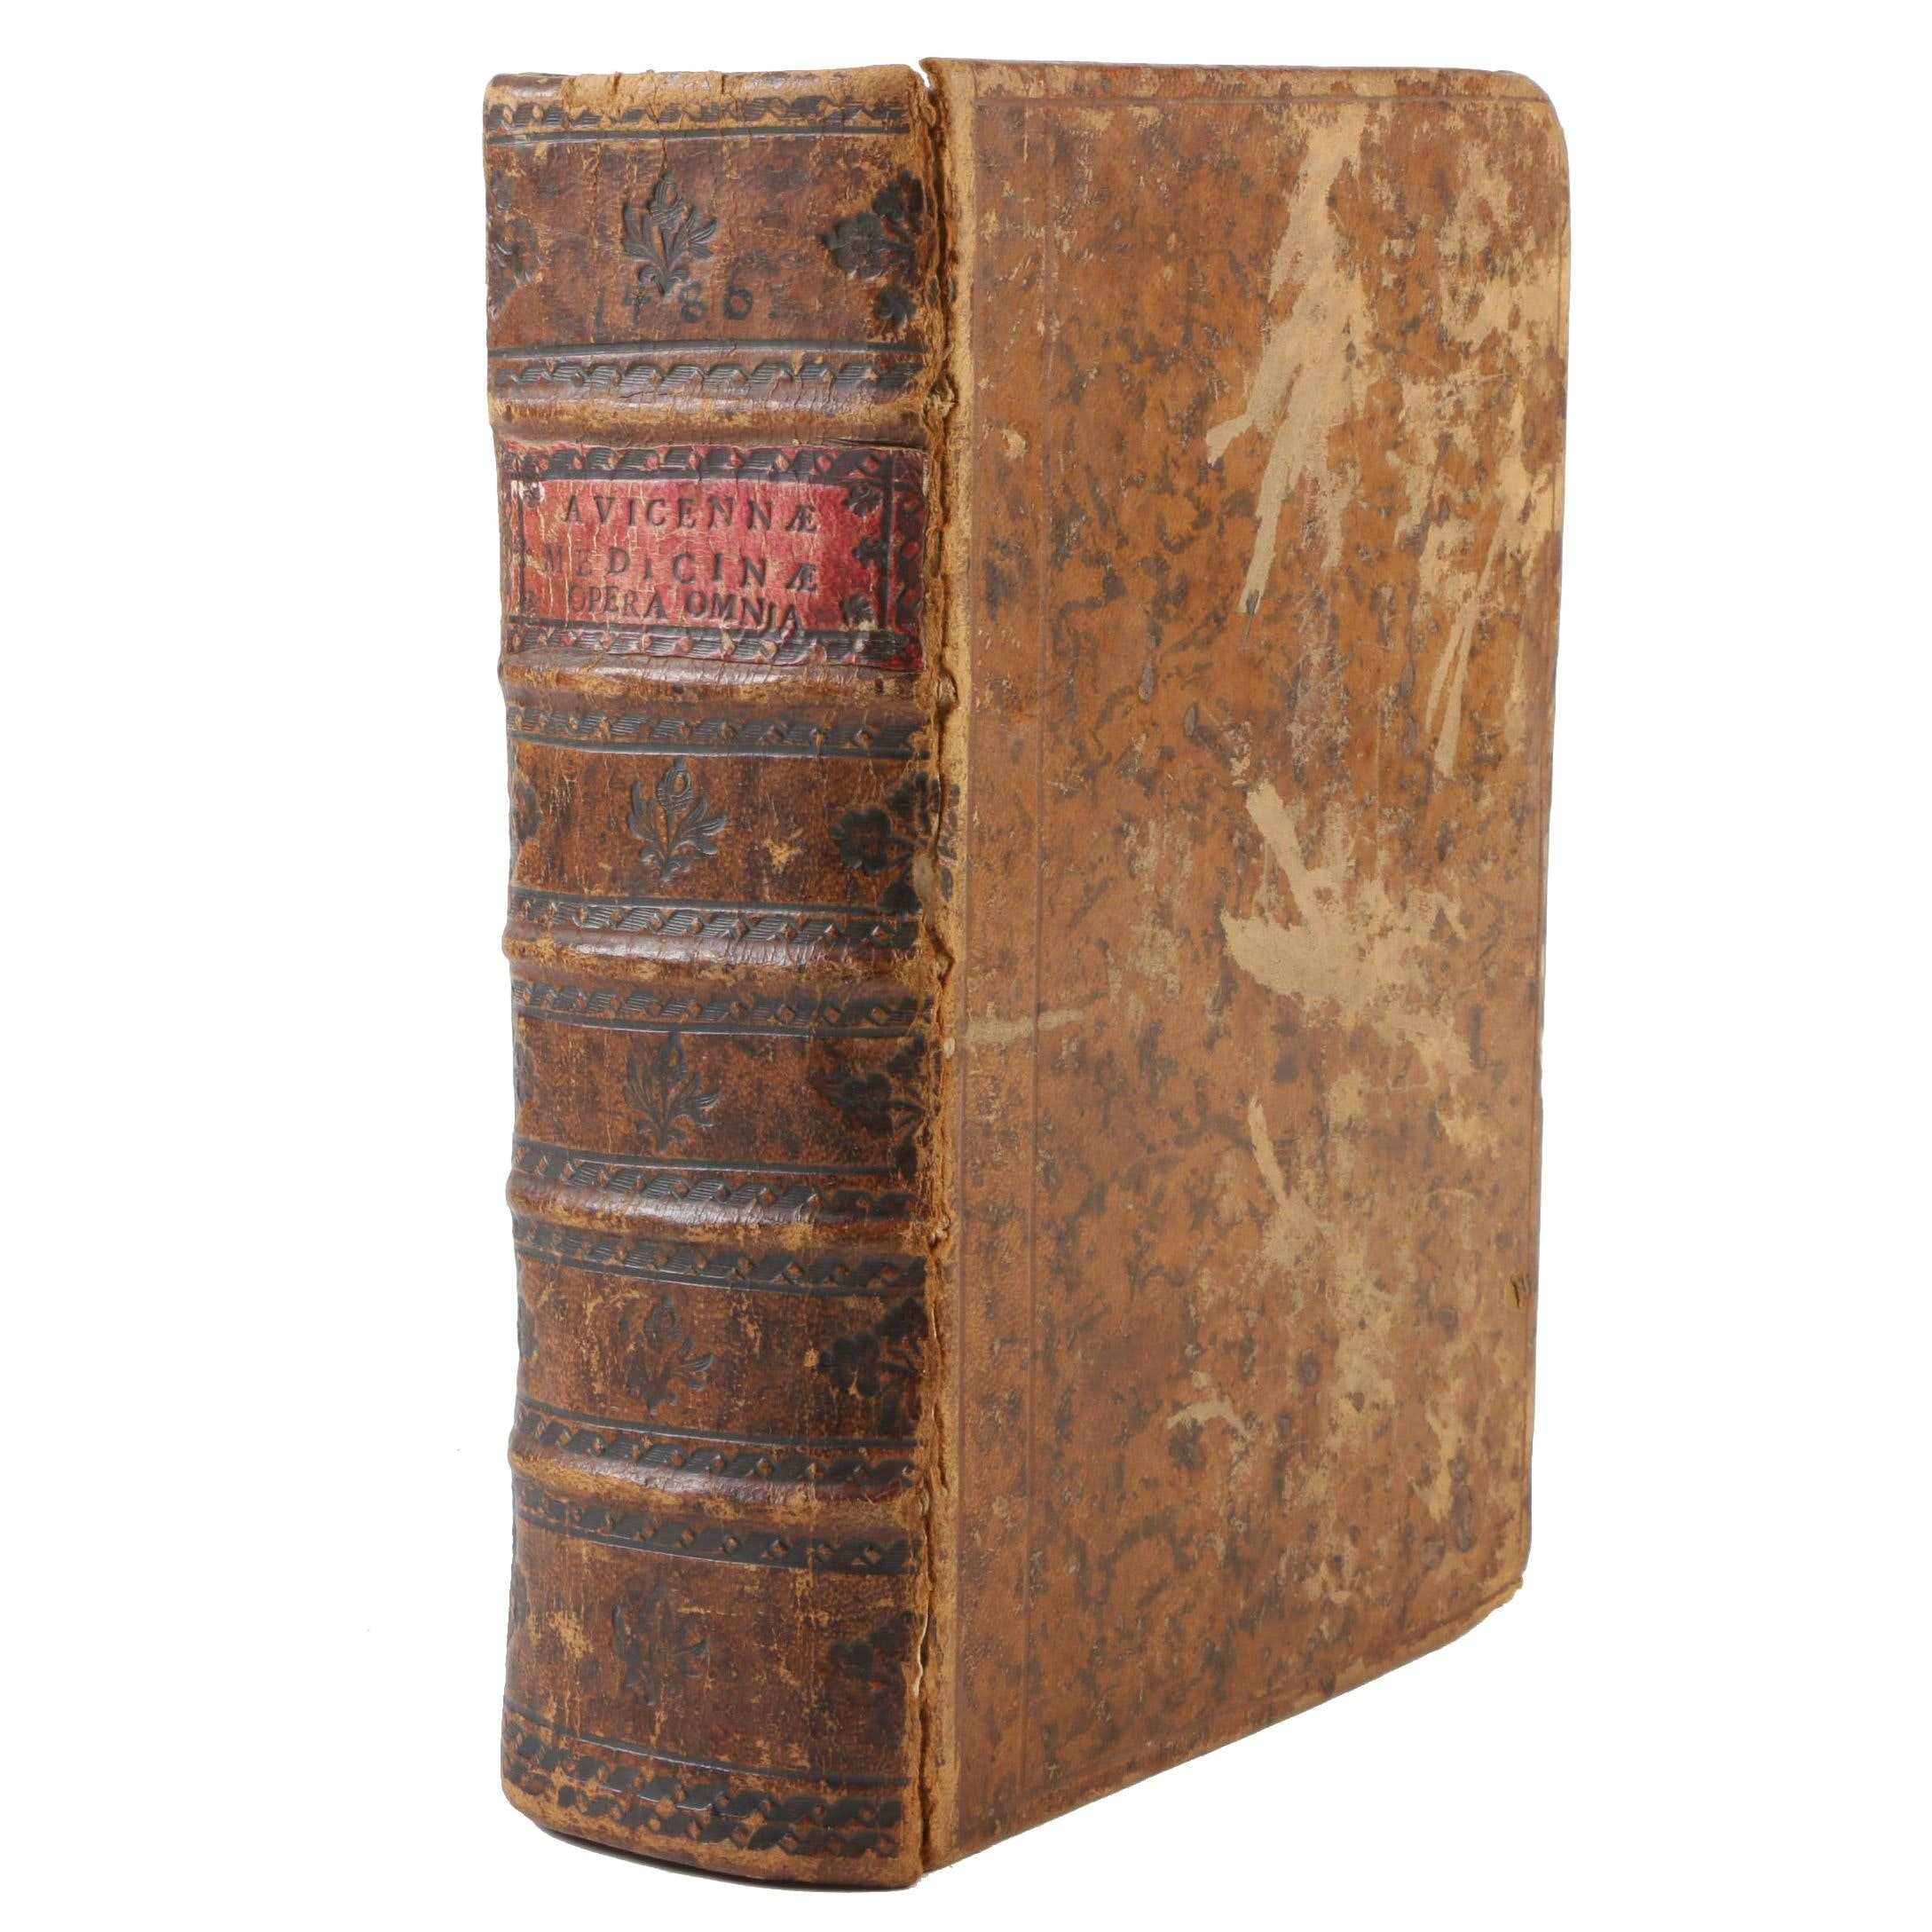 """1486 Avicenna """"Canon of Medicine"""" Incuanble Printed by Petrus Maufer"""